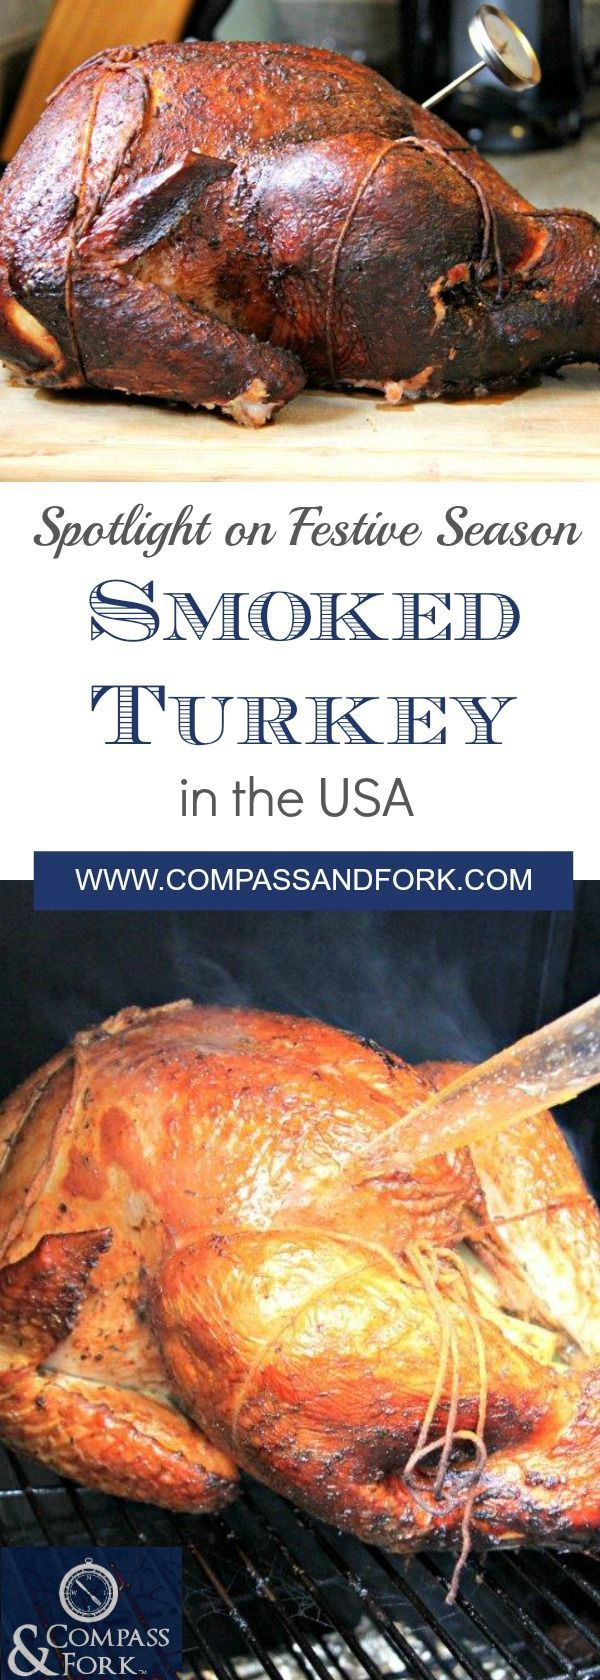 willie bird smoked turkey cooking instructions